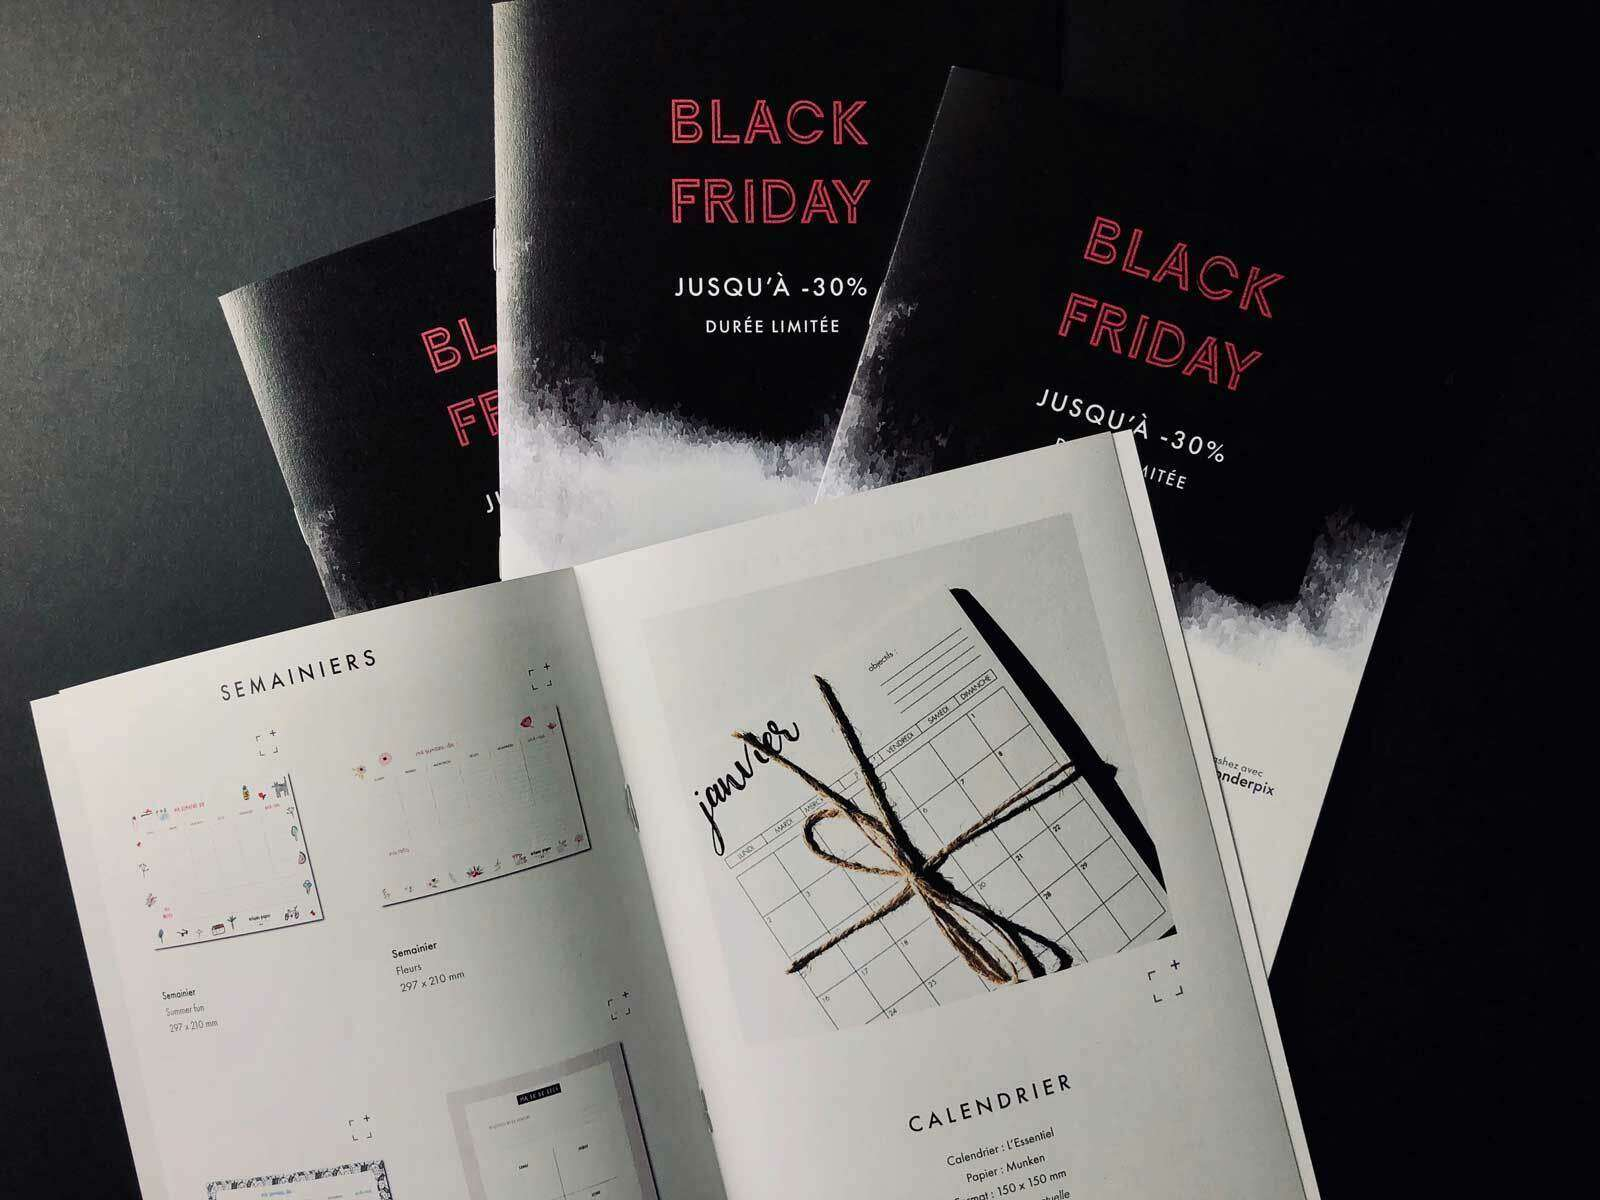 catalogue-black-friday-grafik-plus-impression-papier-connecte